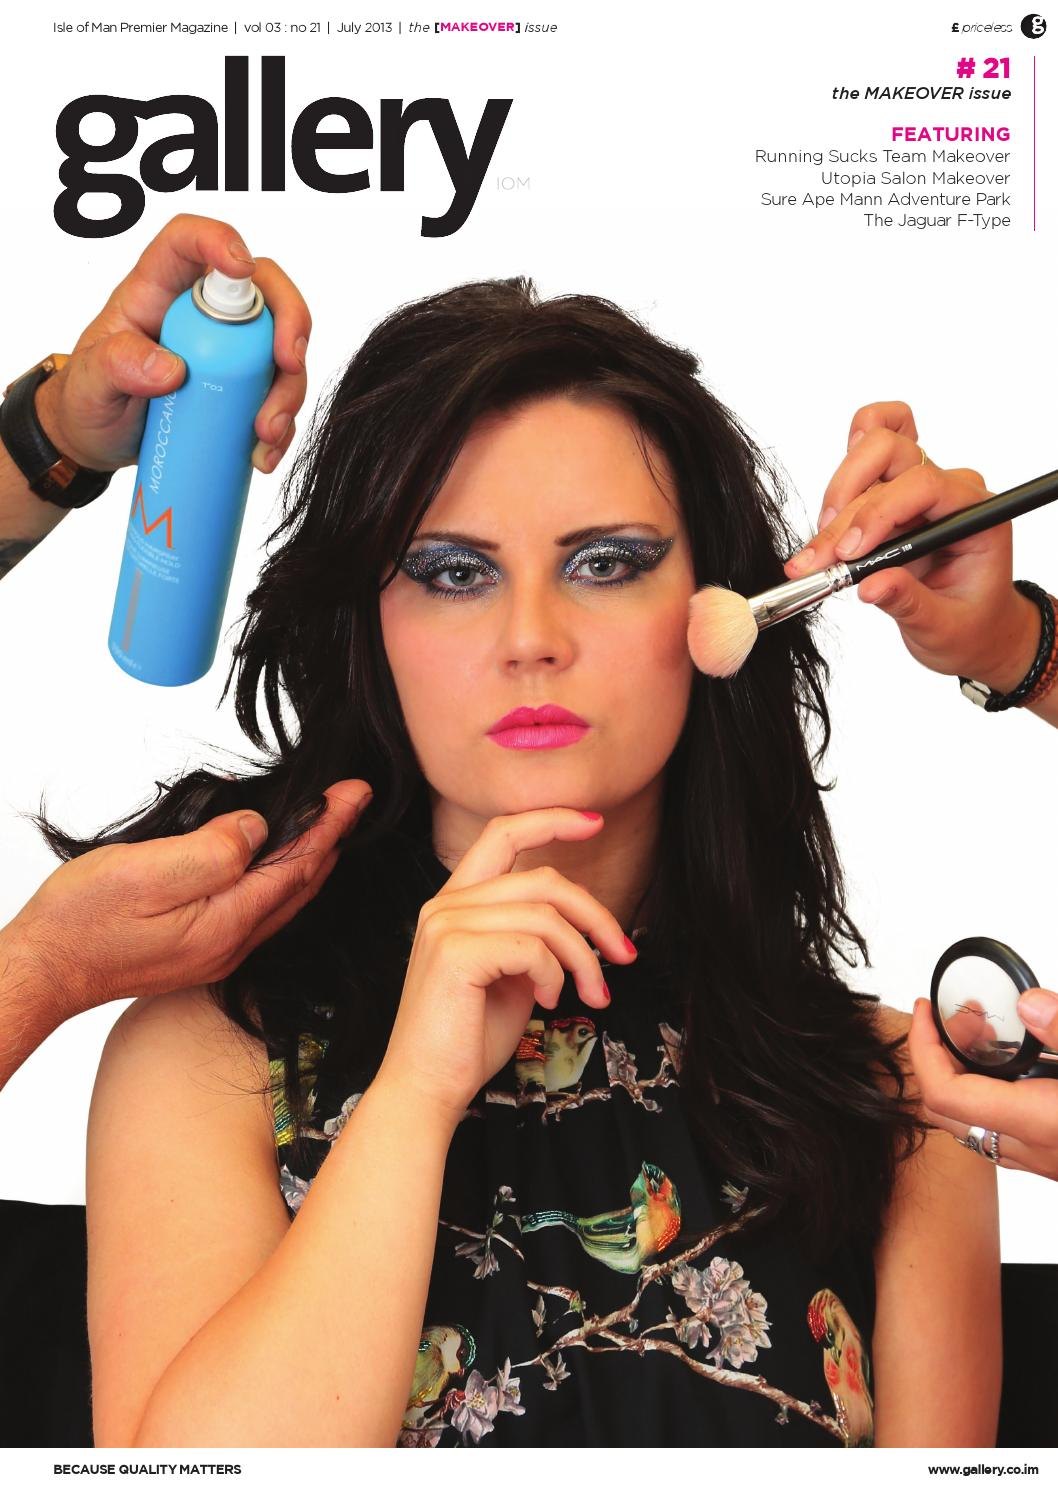 Gallery July 2013 The Makeover Issue By Isle Of Man Media Issuu Caigcircuitwriterpen Caig Circuit Writer Pen Http Wwwamazonco